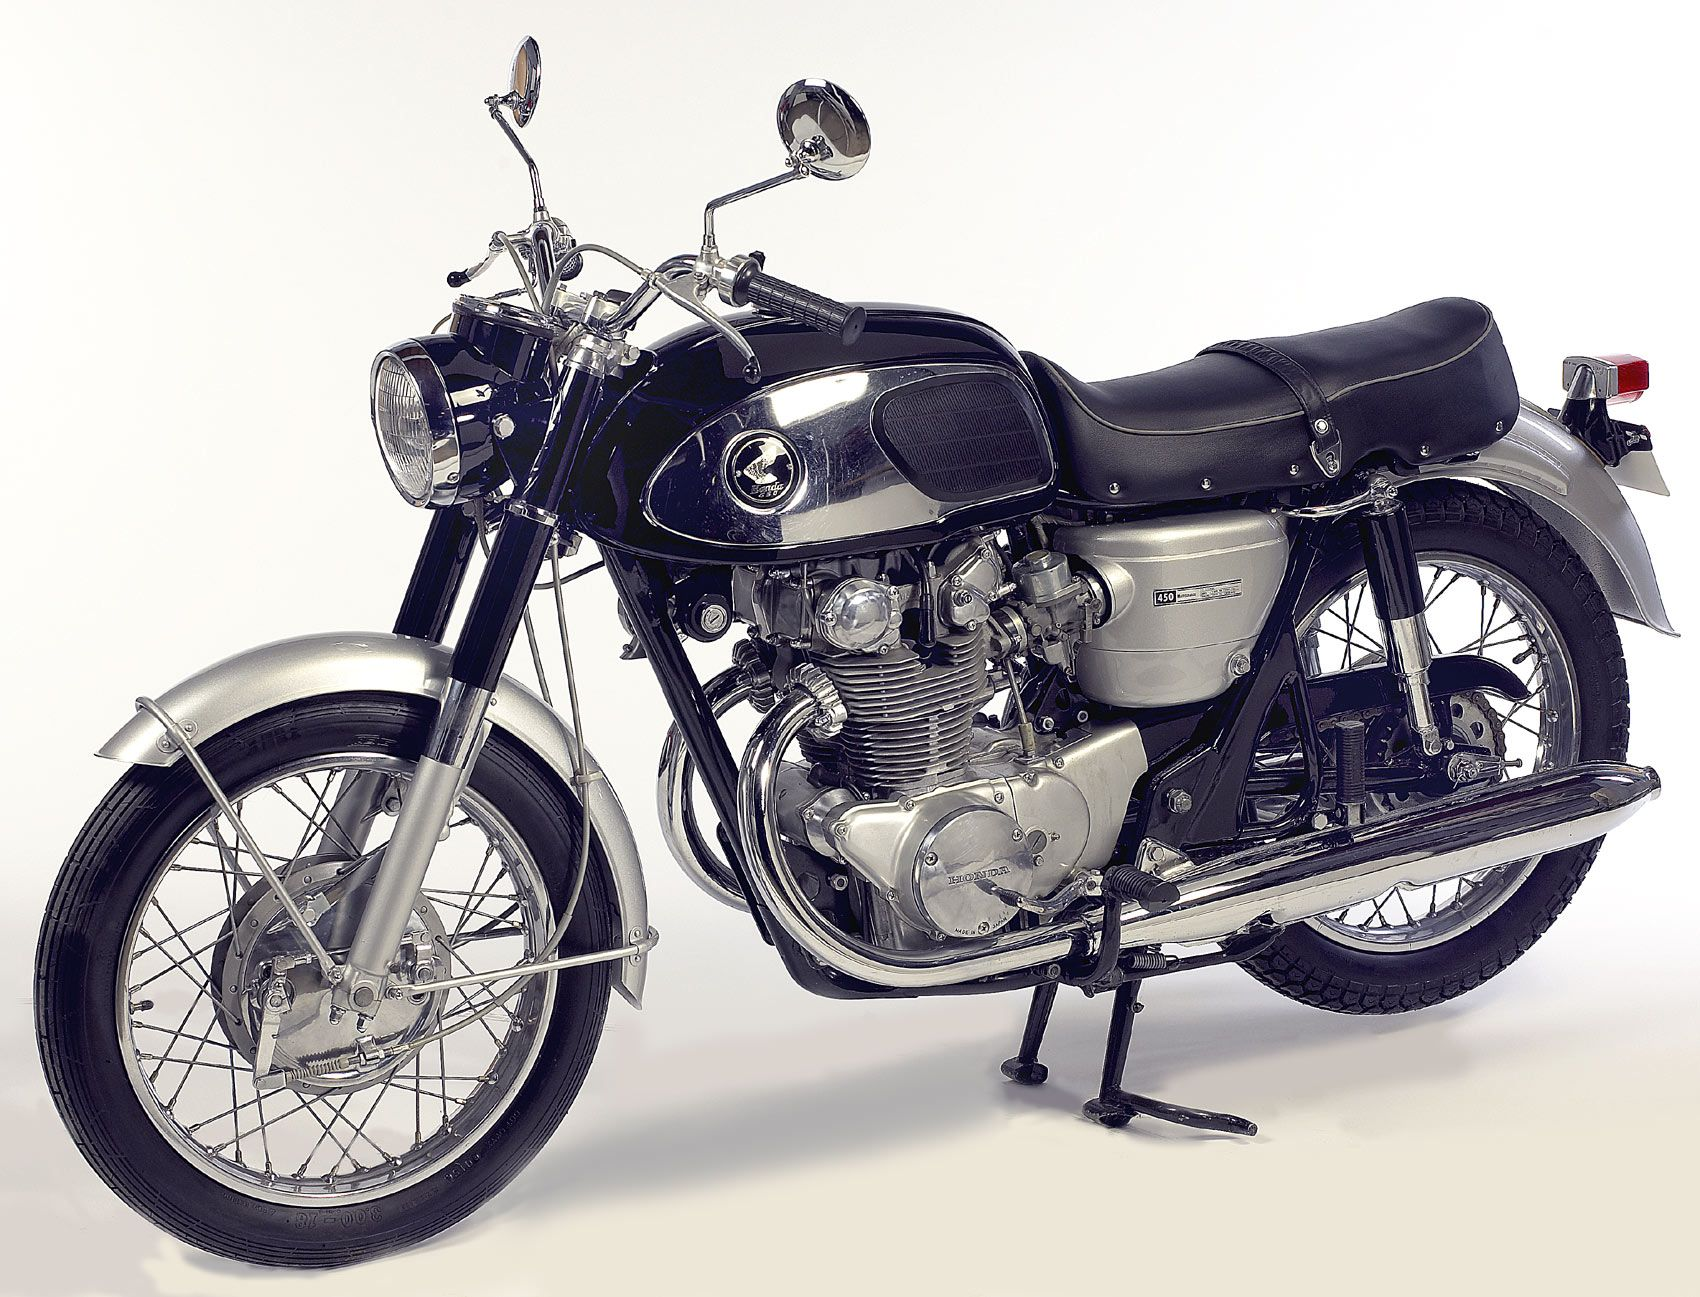 Motor Cycles Sports Classic Motorcycles The Honda Cb750 Classic Motorcycles Honda Cb750 Honda